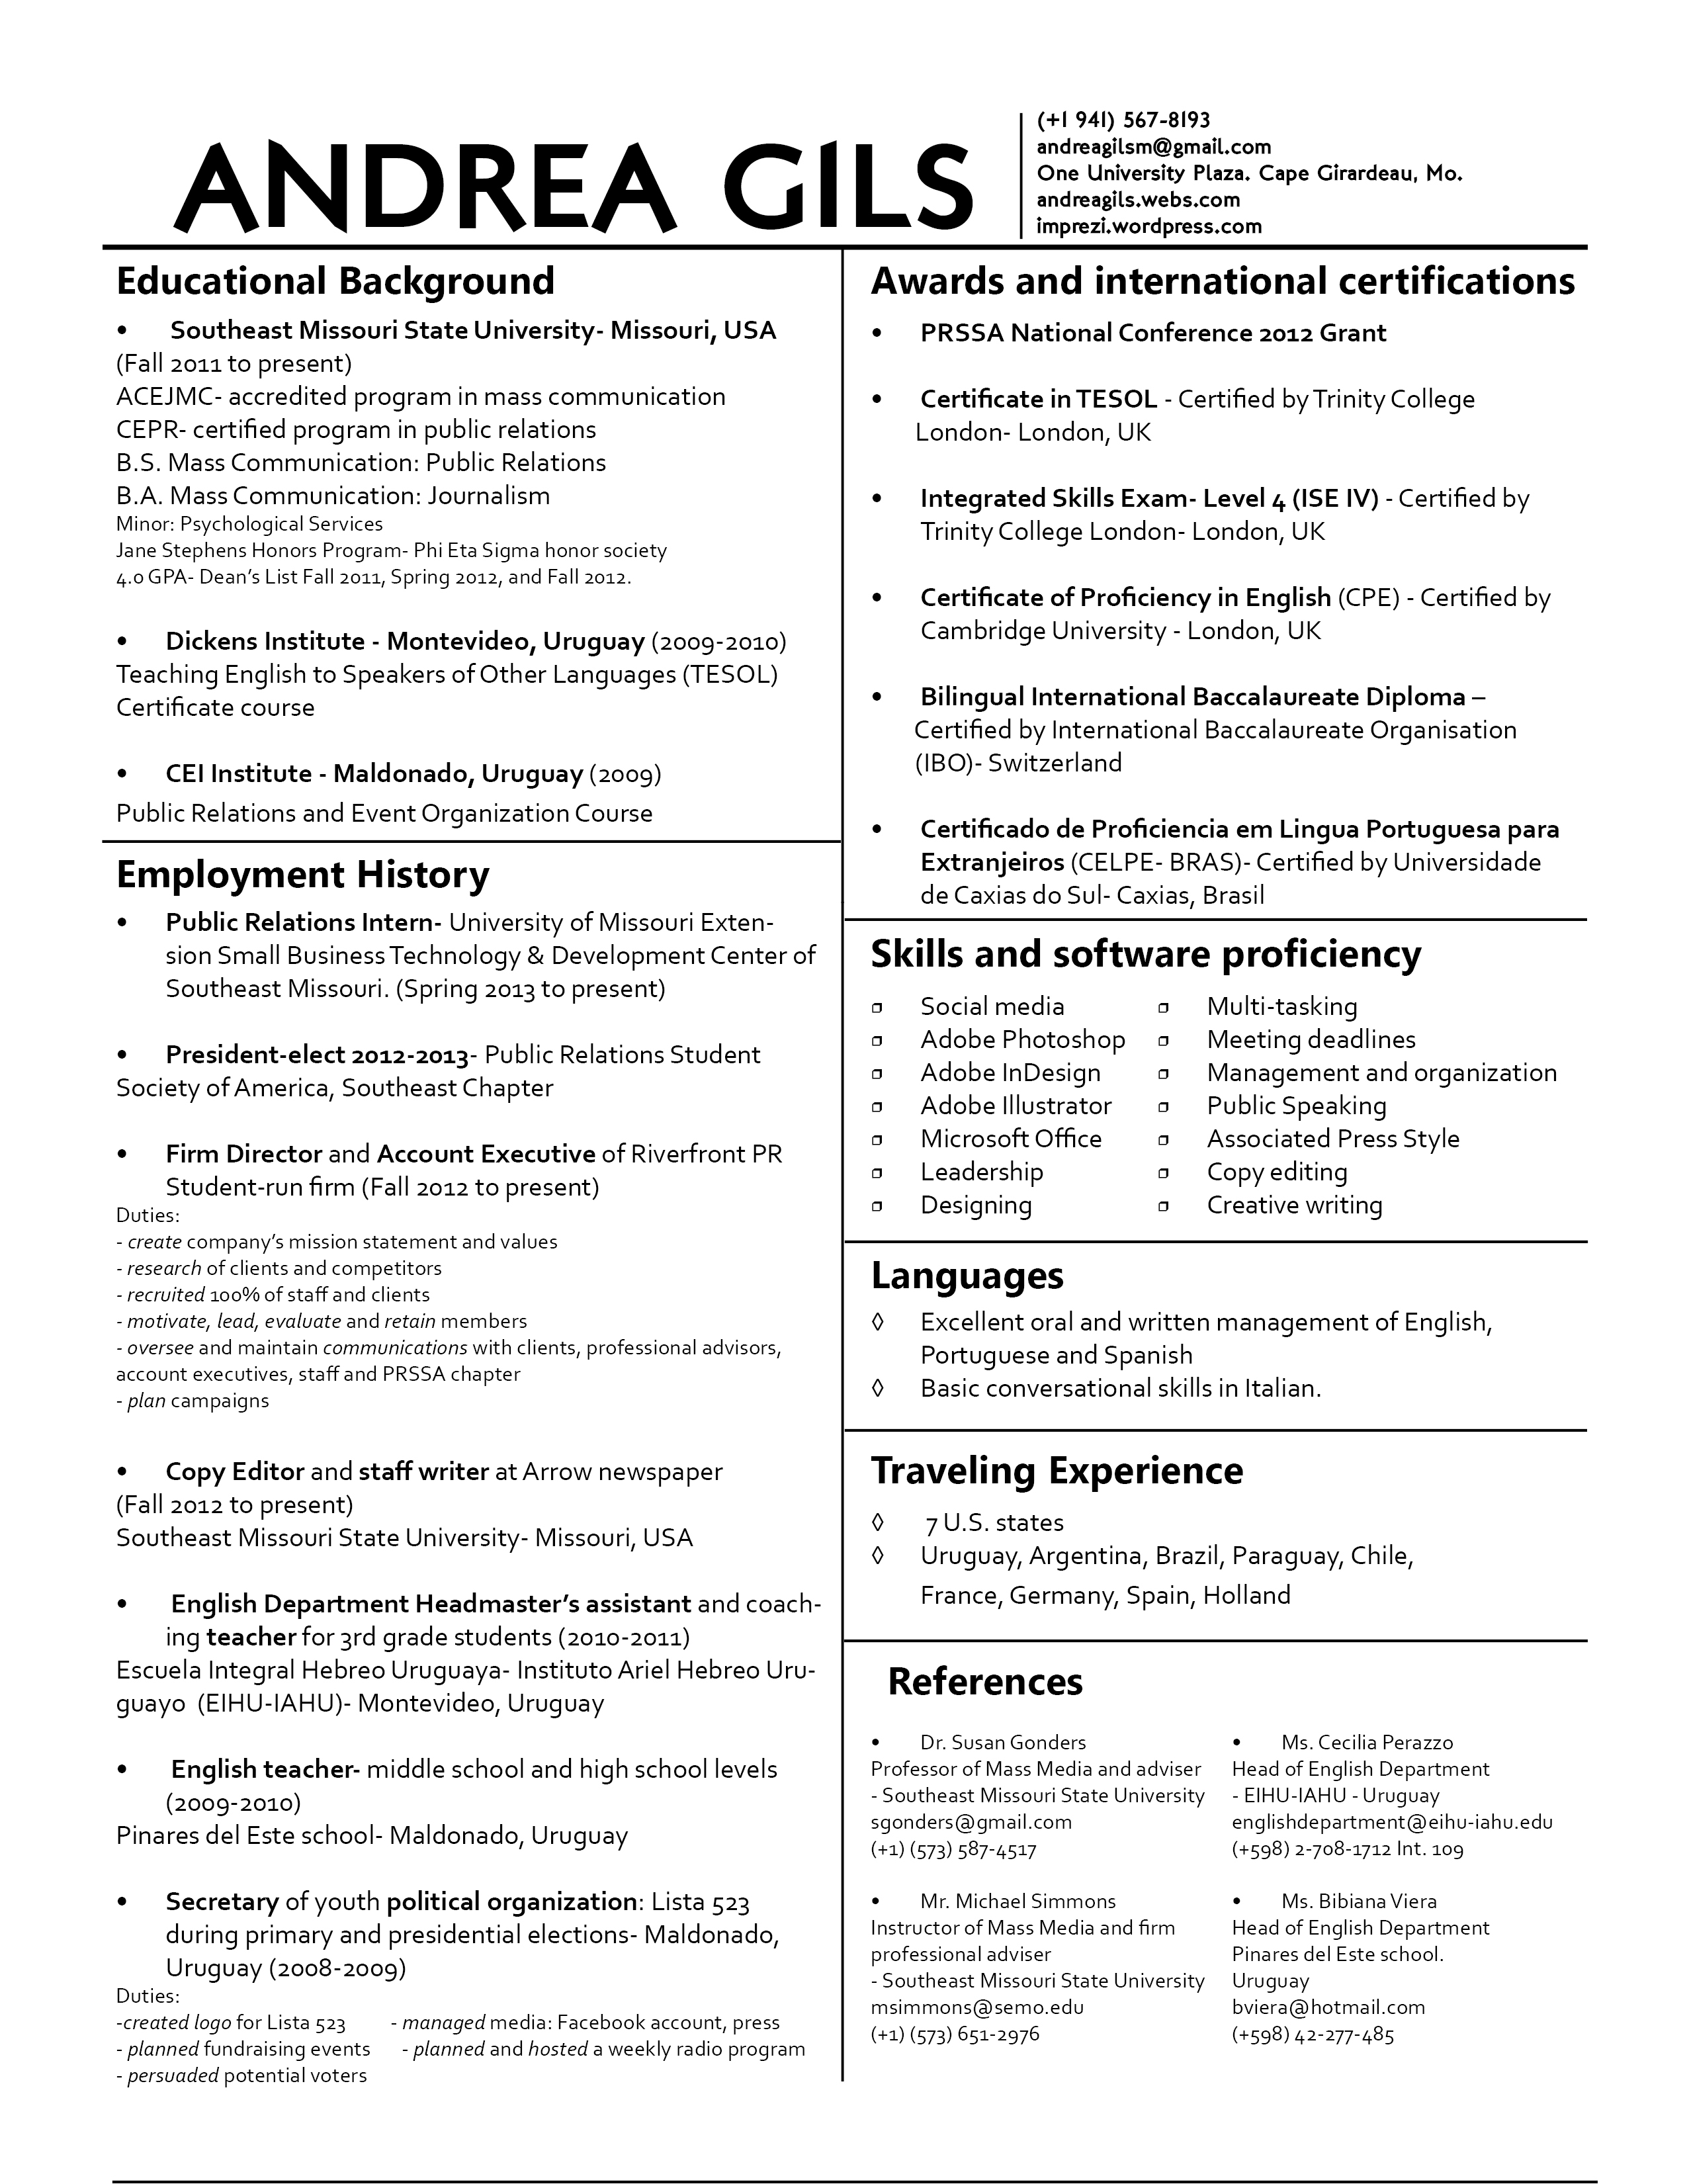 resume tips for professionals